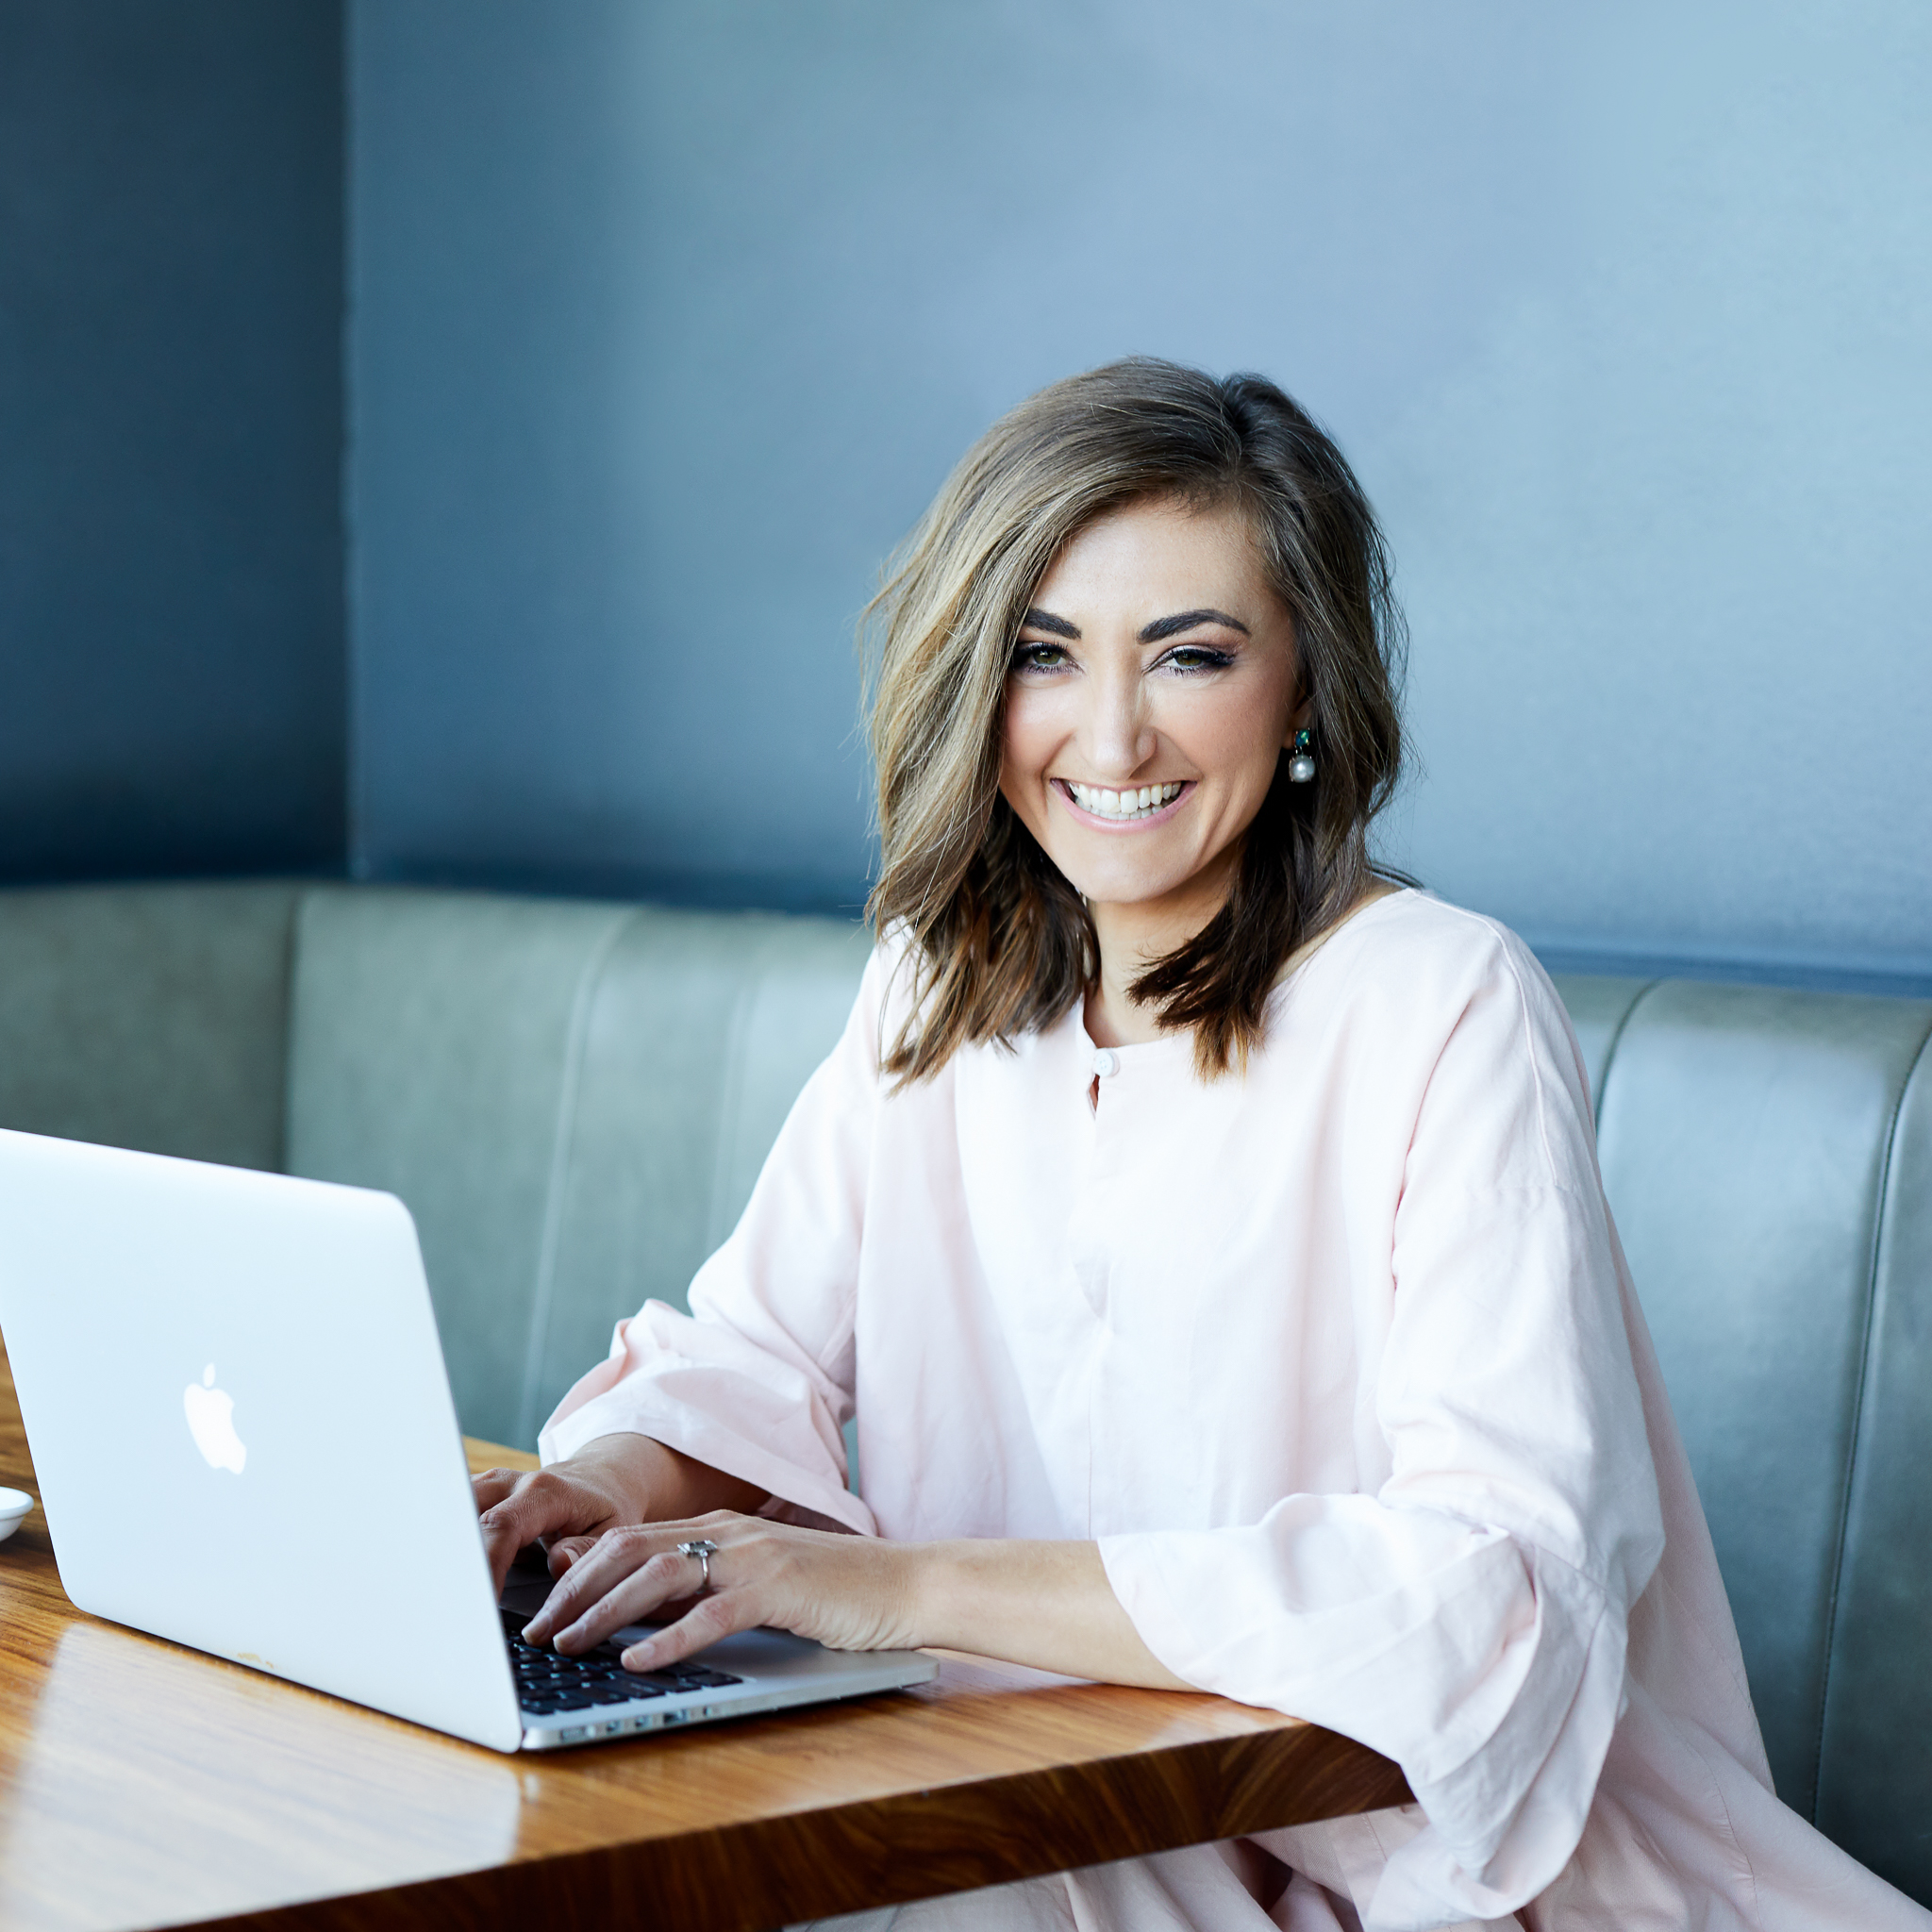 - Emily Haydon: Founder of The Talent Connective, career recruiter, networking enthusiast, tea drinker.Em is an advocate for aligning careers with purpose, conscious living, and the role of business as a vehicle for social change.